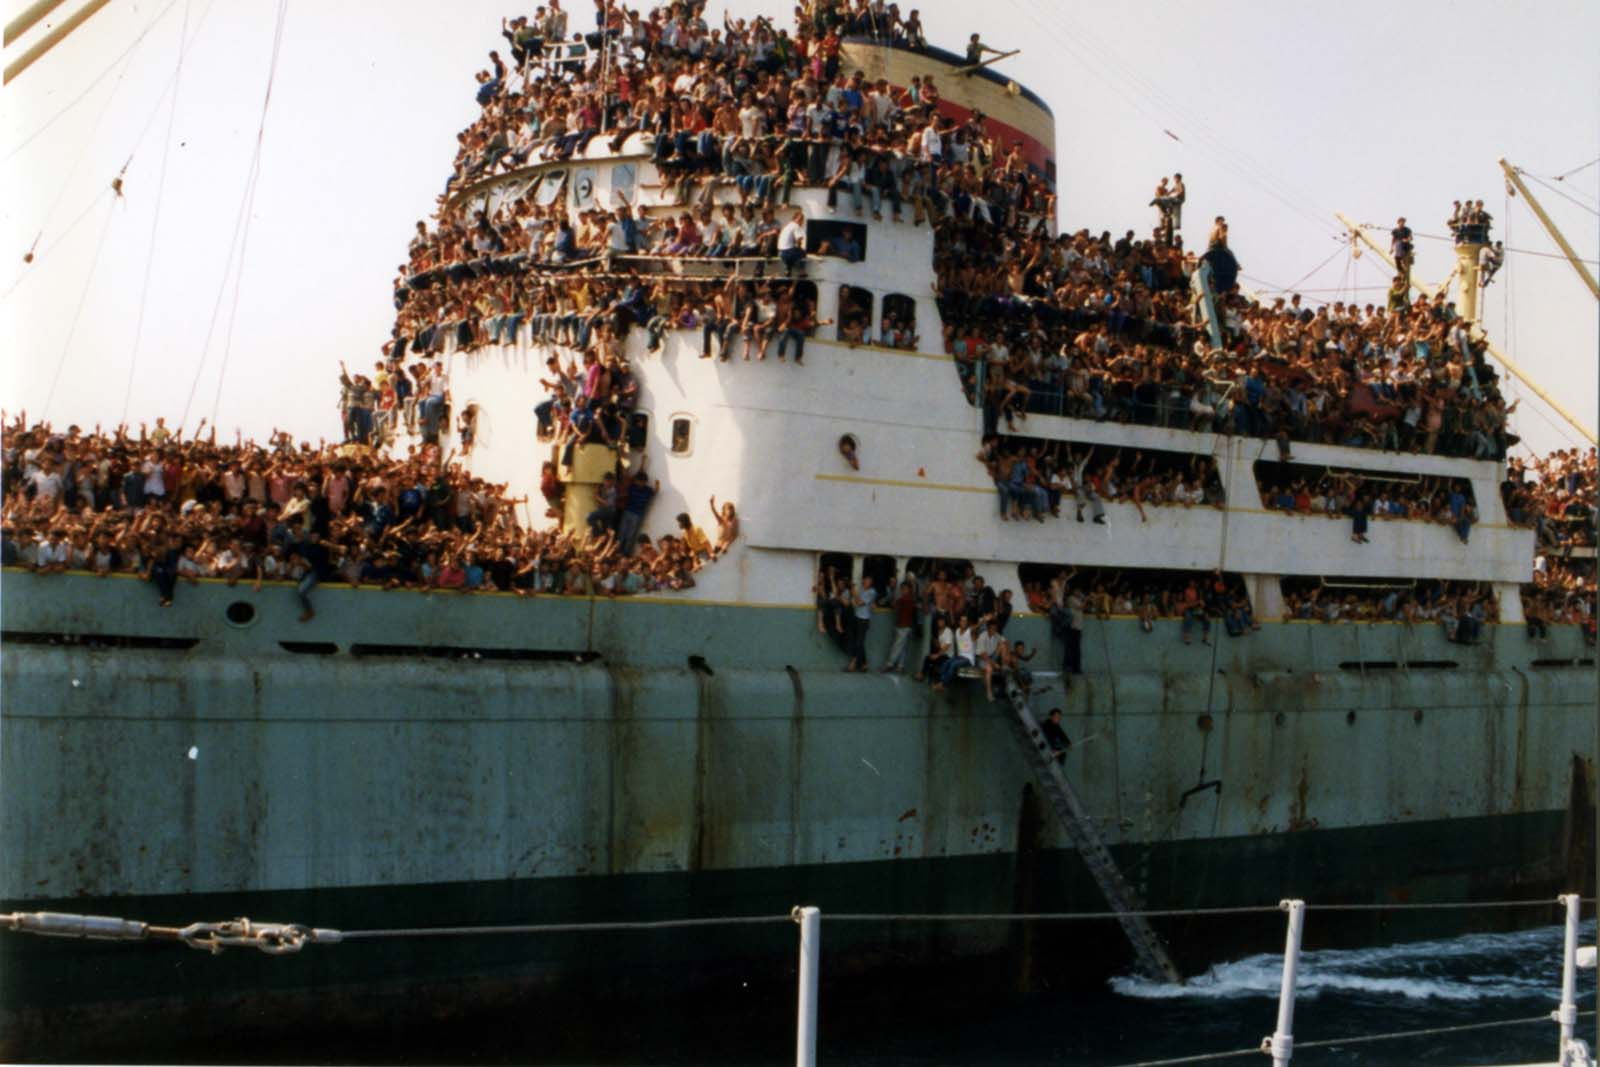 Virtually every inch of the ship was filled (some hanging from ladders for most of the voyage).